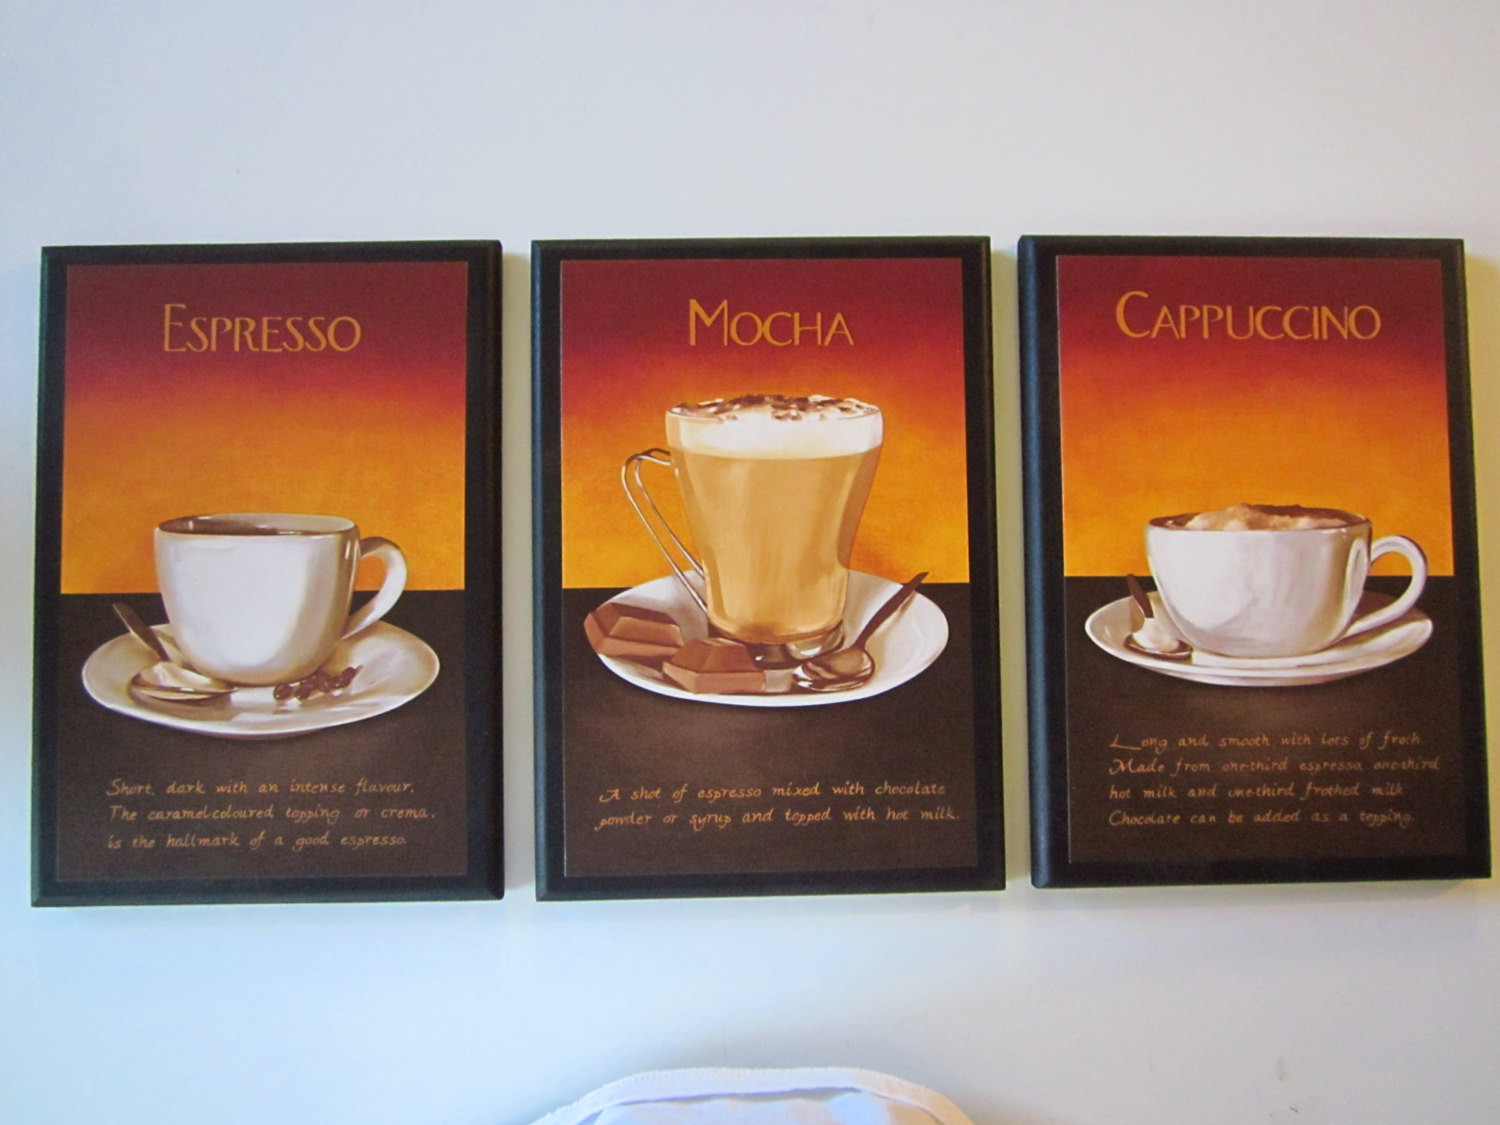 Best ideas about Cappuccino Kitchen Decor . Save or Pin Mocha Cappuccino Espresso wall decor plaques kitchen coffee Now.